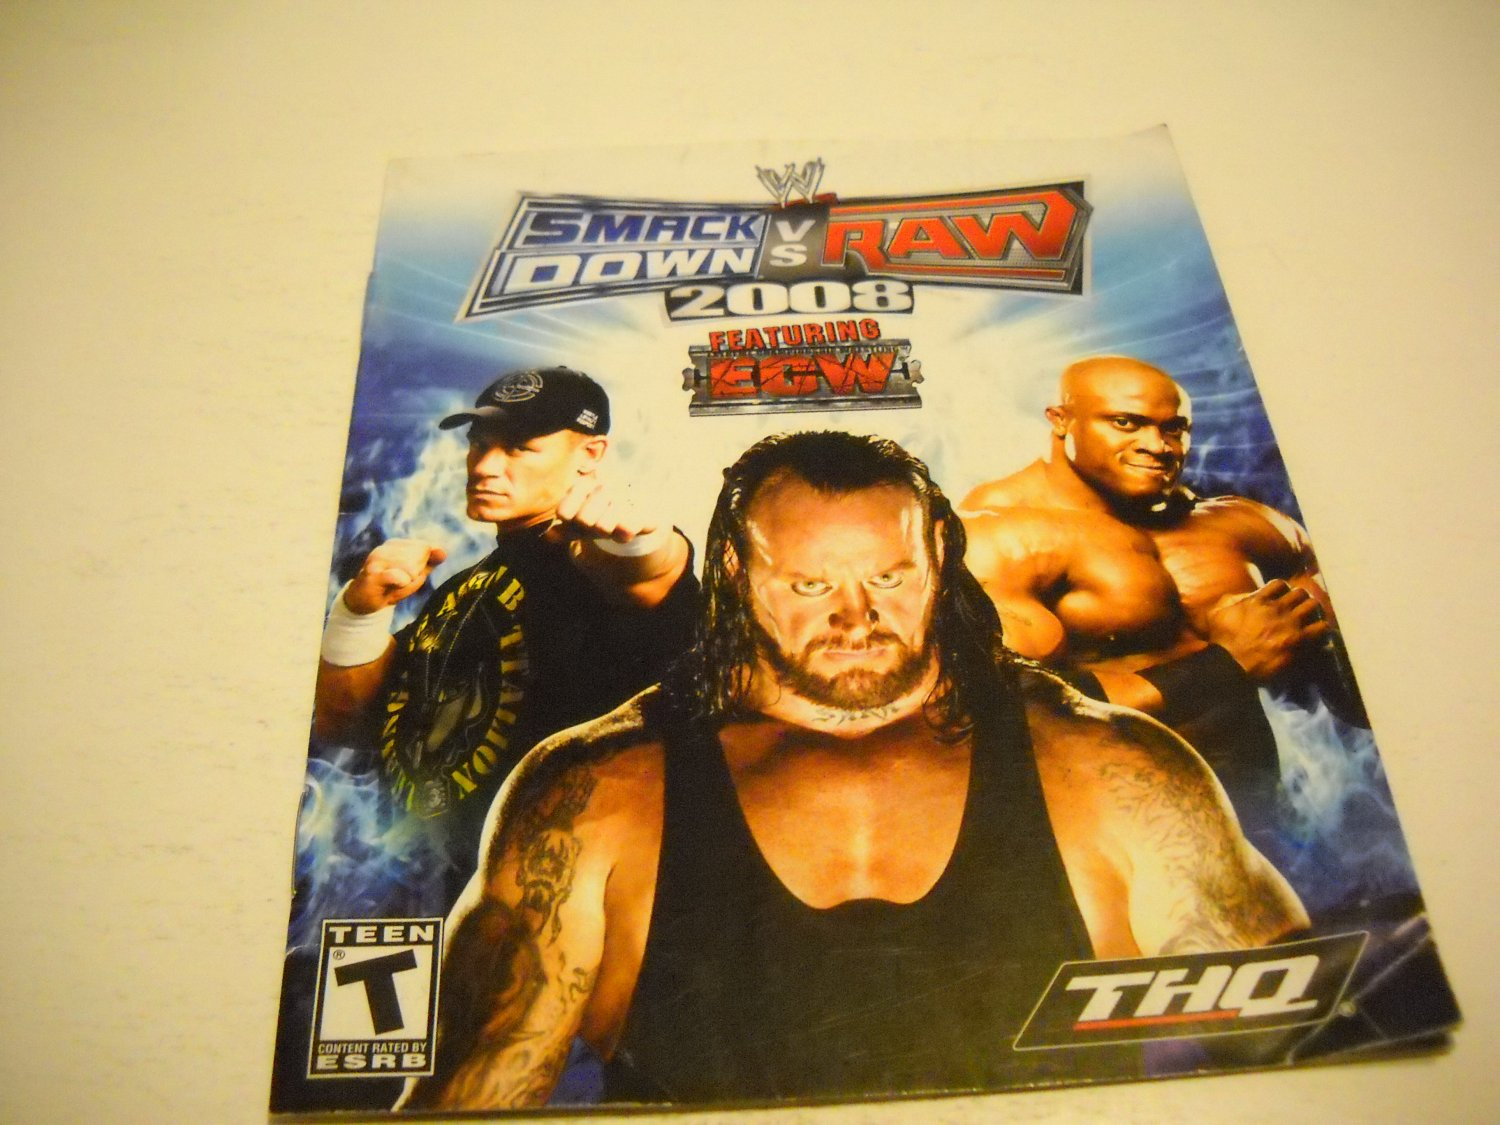 Manual ONLY ~  for WWE Smack Down vs. Raw 2008, PS3